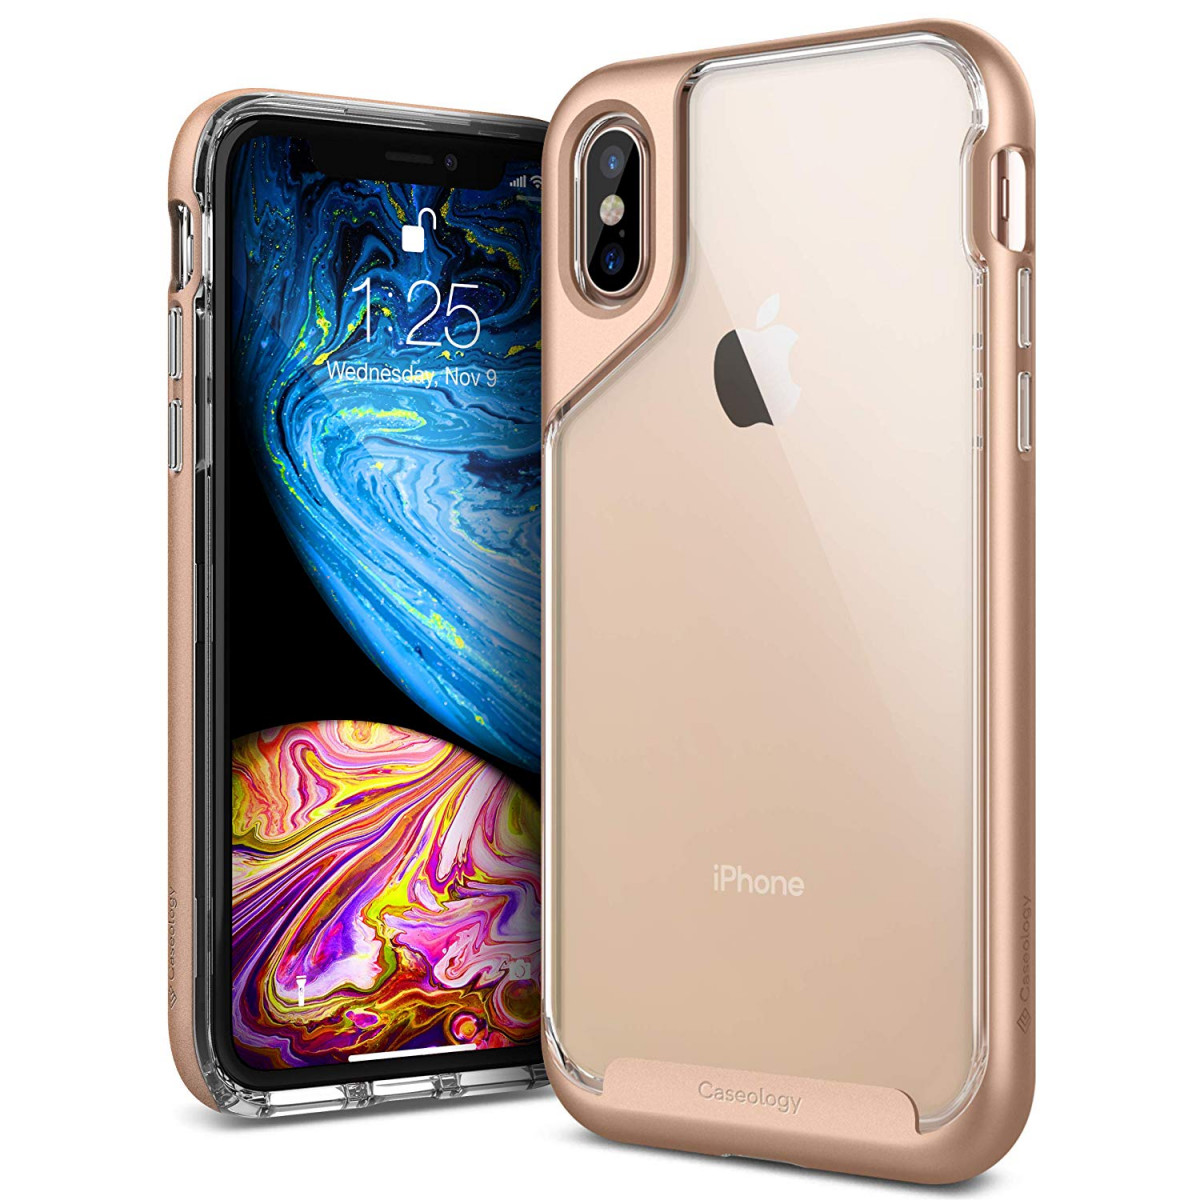 separation shoes 15add 9997b Caseology [Skyfall Series] iPhone Xs/iPhone X Case - [Clear Back/Premium  Finish] - Gold